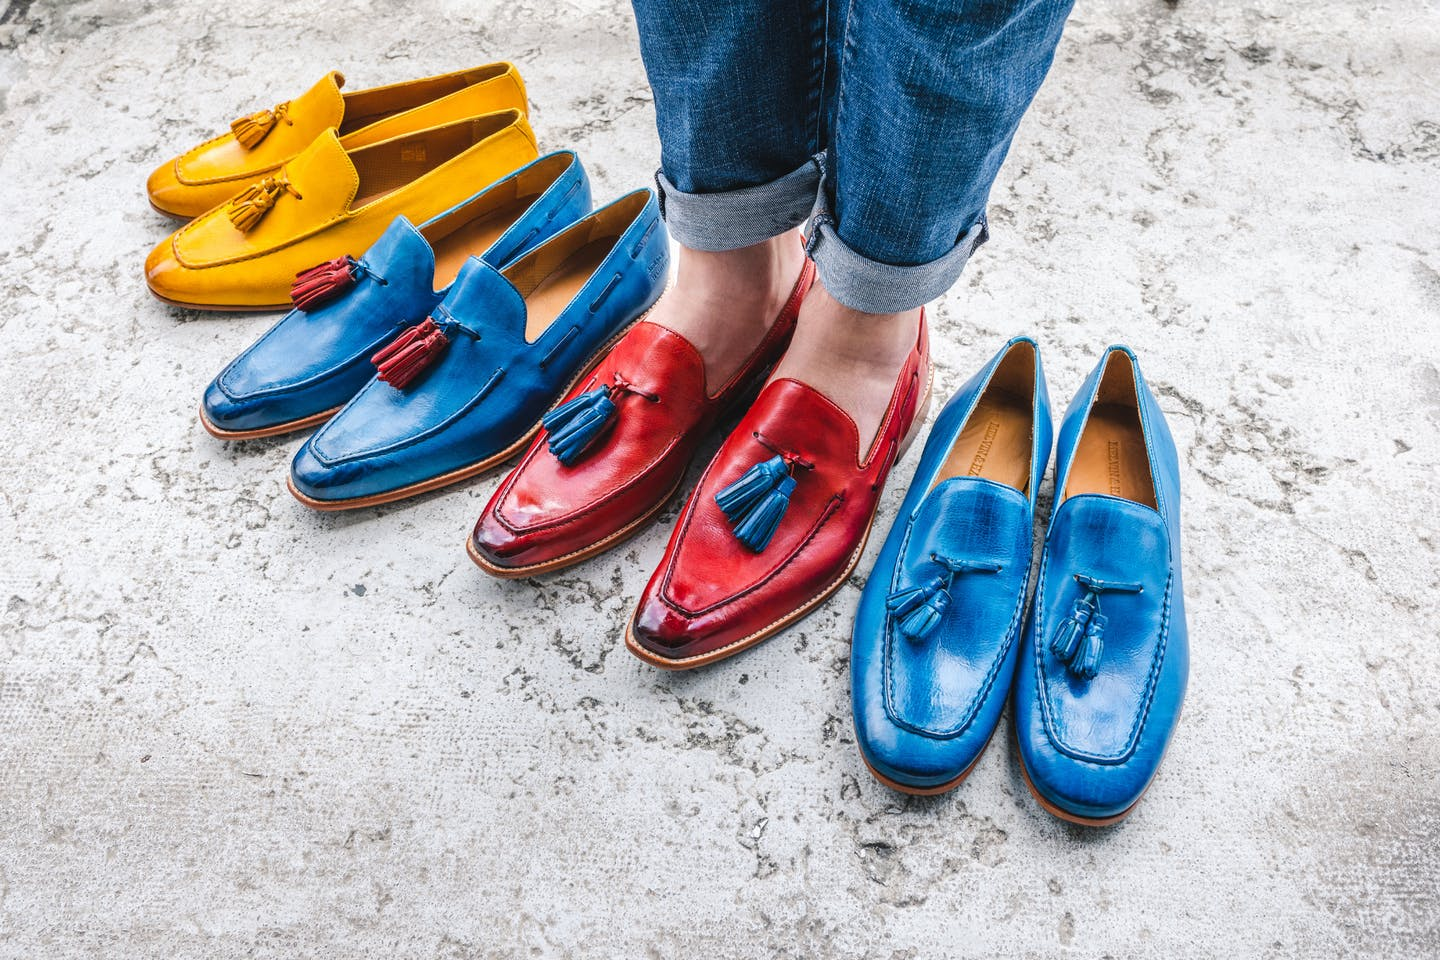 Colourful Shoes by Melvin & Hamilton